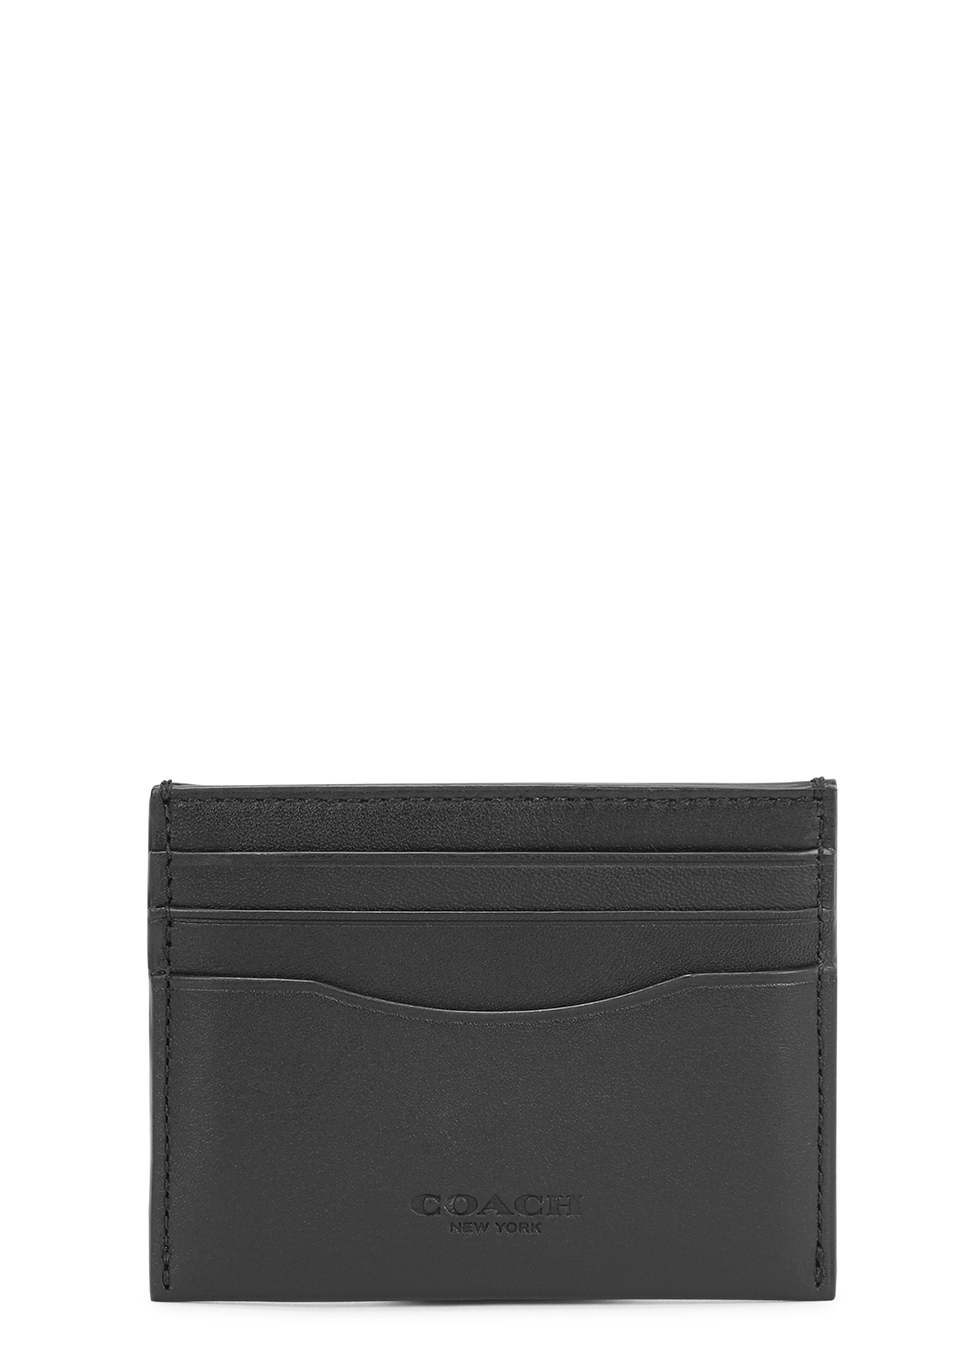 Black leather card holder - Coach